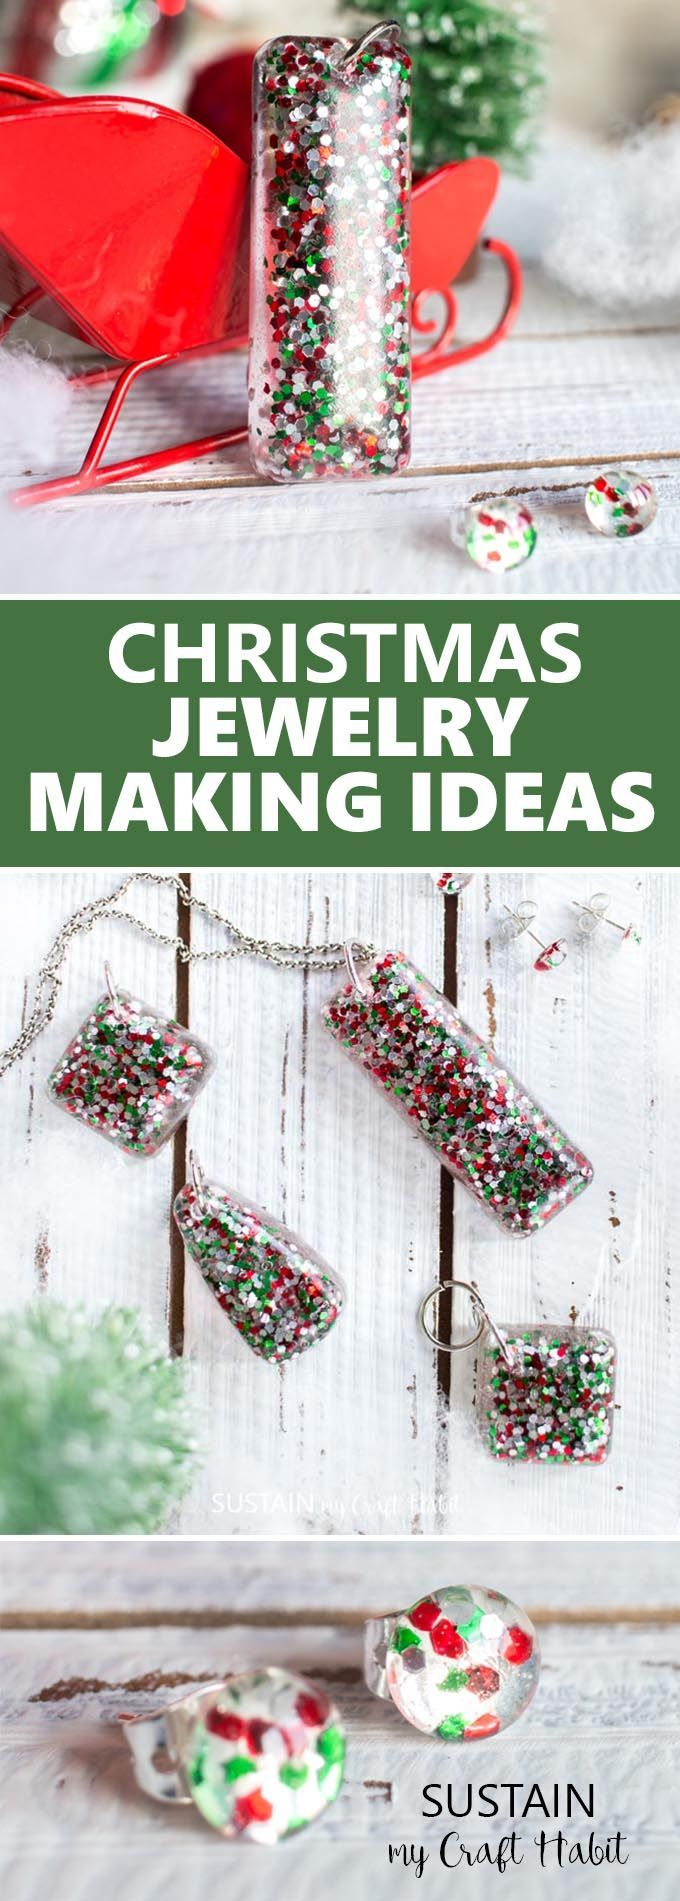 Beautiful handmade Christmas jewelry gift ideas! Resin jewelry making ideas | DIY Christmas earrings gift ideas | How to make resin jewellery #resincrafts #resincraftsblog #diyjewelry via @sustainmycrafth